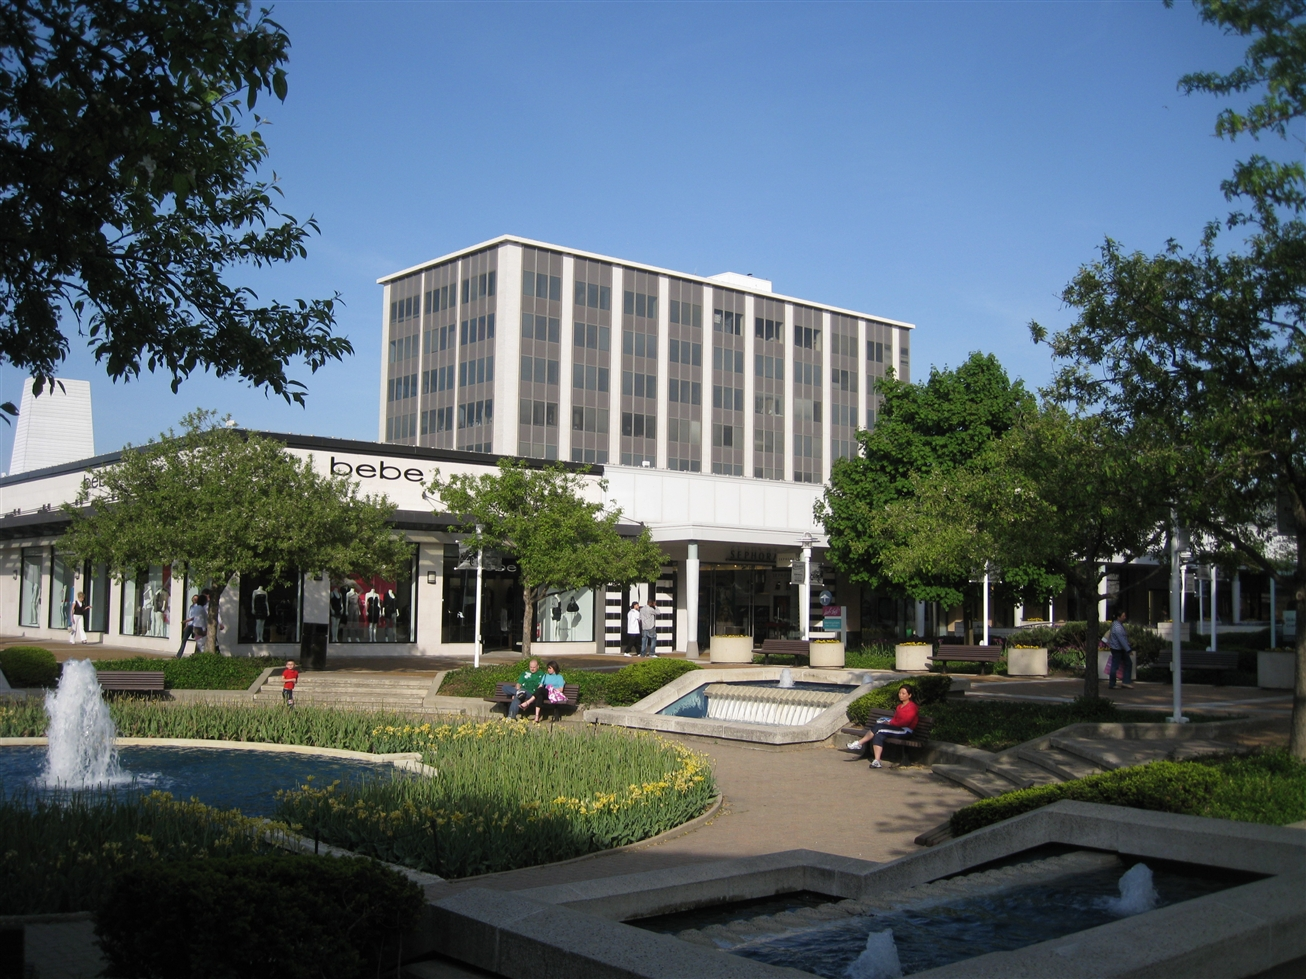 oakbrook center restaurants il. oakbrook-center-11 oakbrook center restaurants il